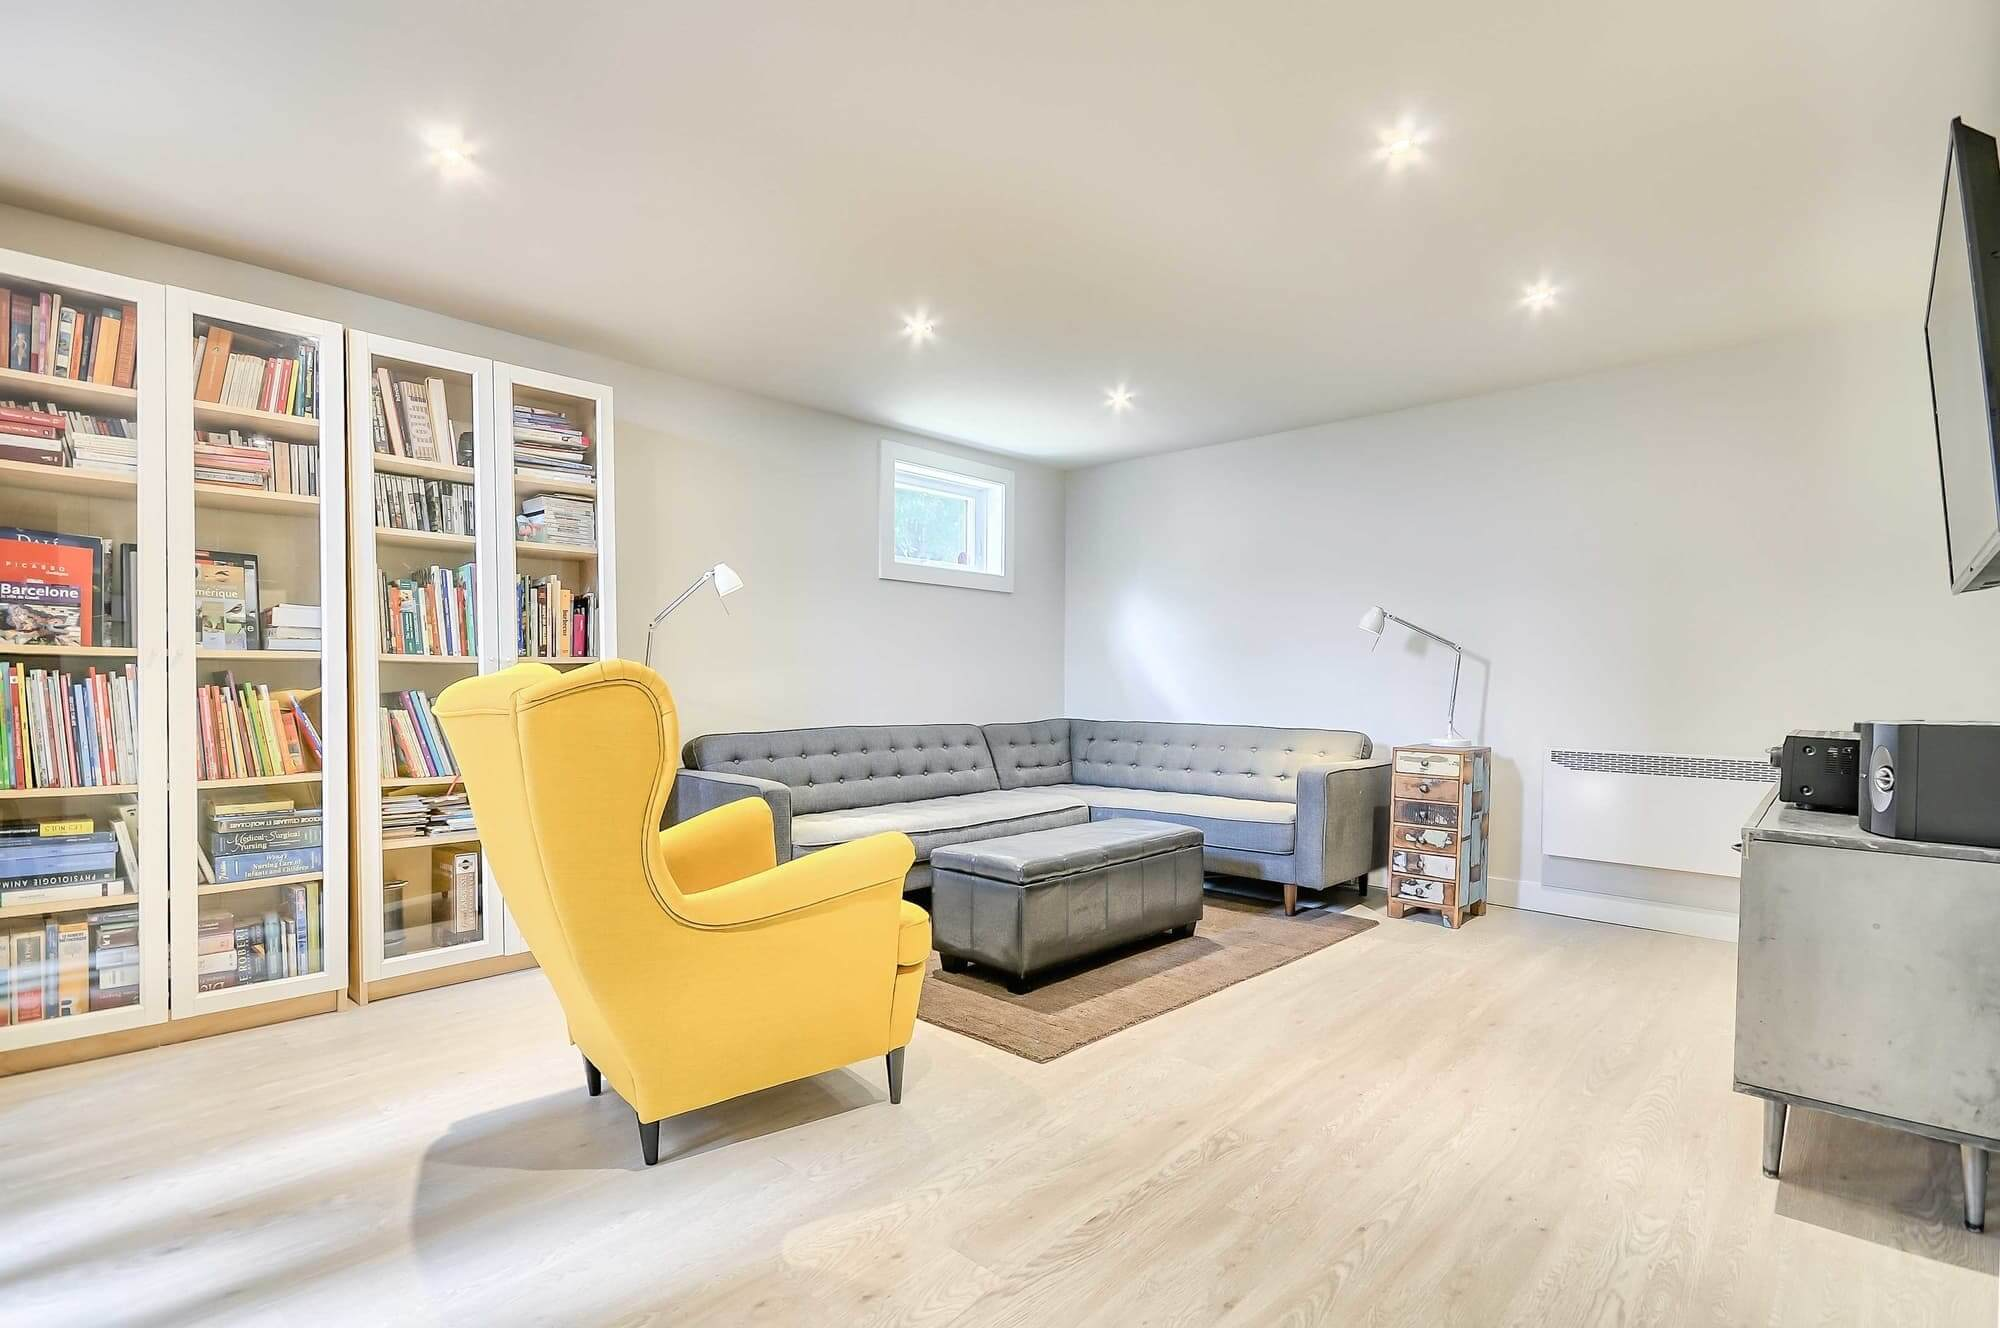 basement decoration with book shelf, yellow armchair and grey couch